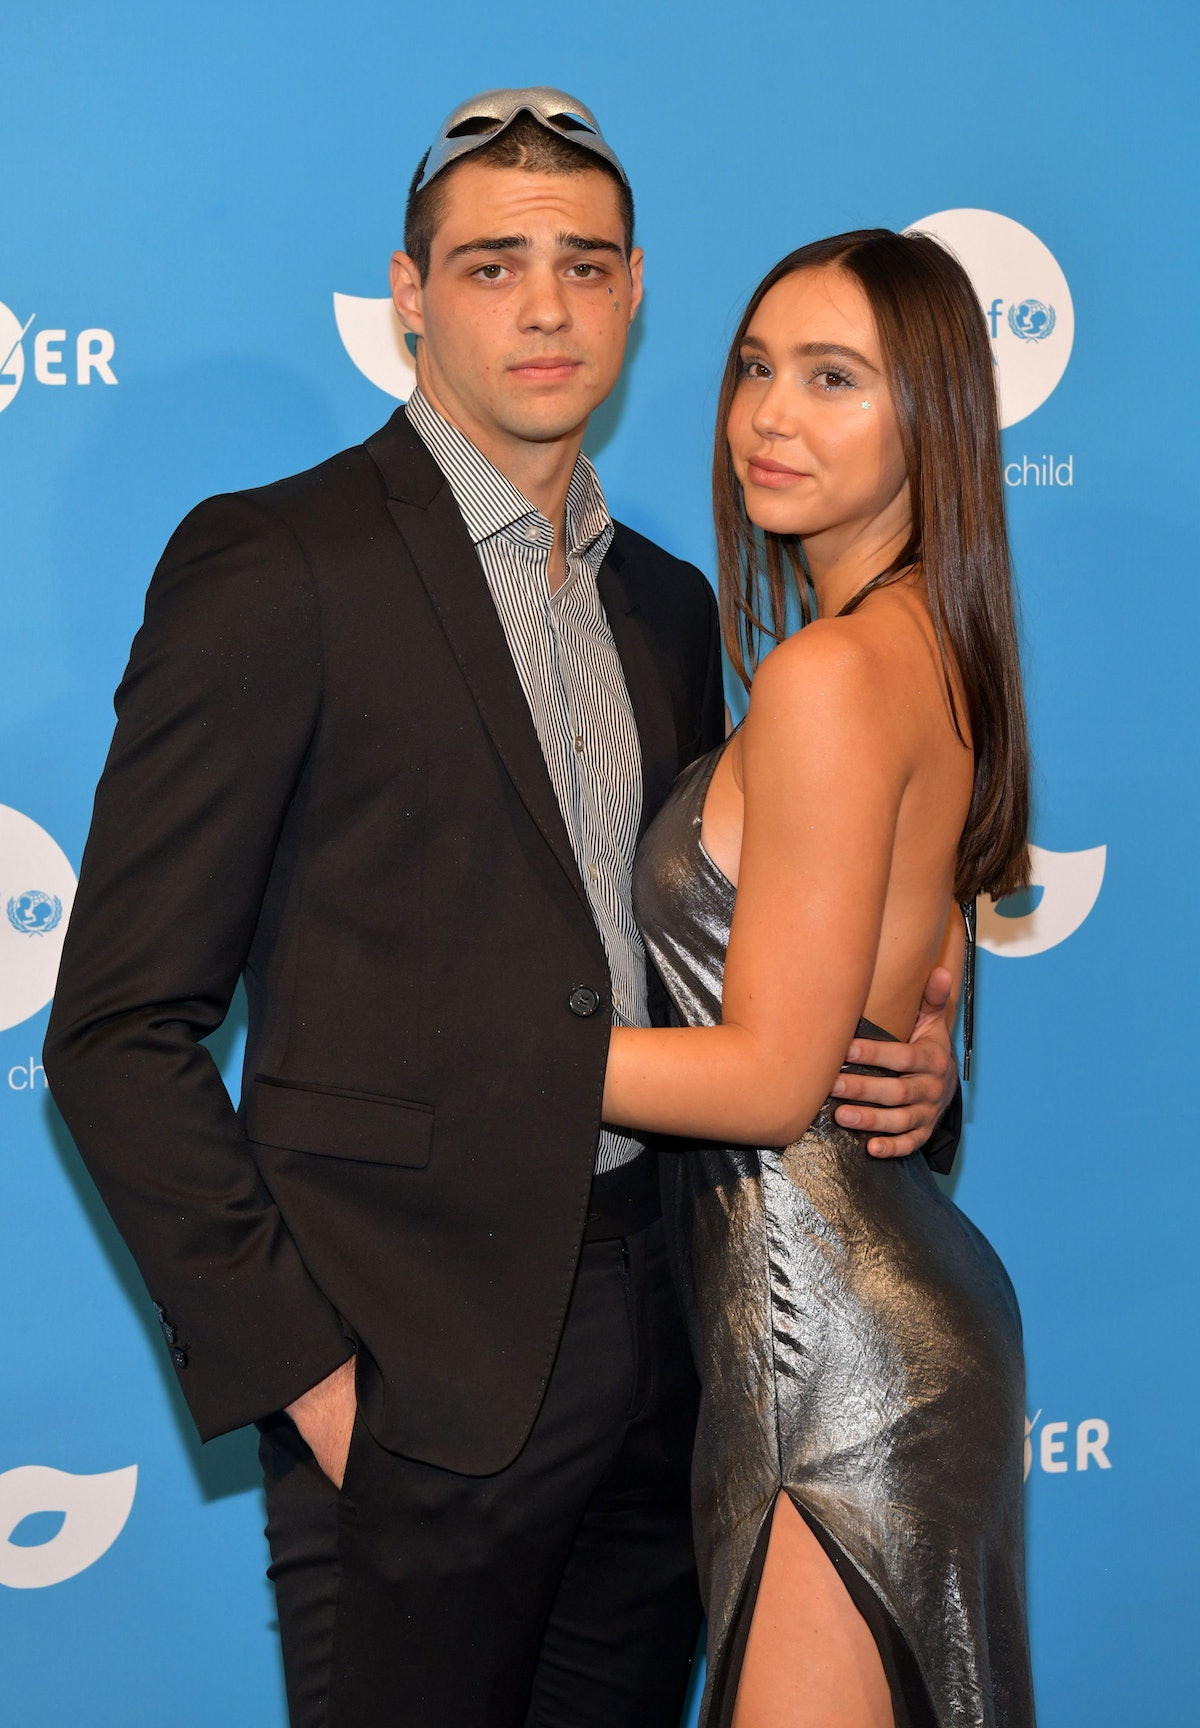 Noah Centineo and Alexis Ren reportedly broke up after a year of dating.